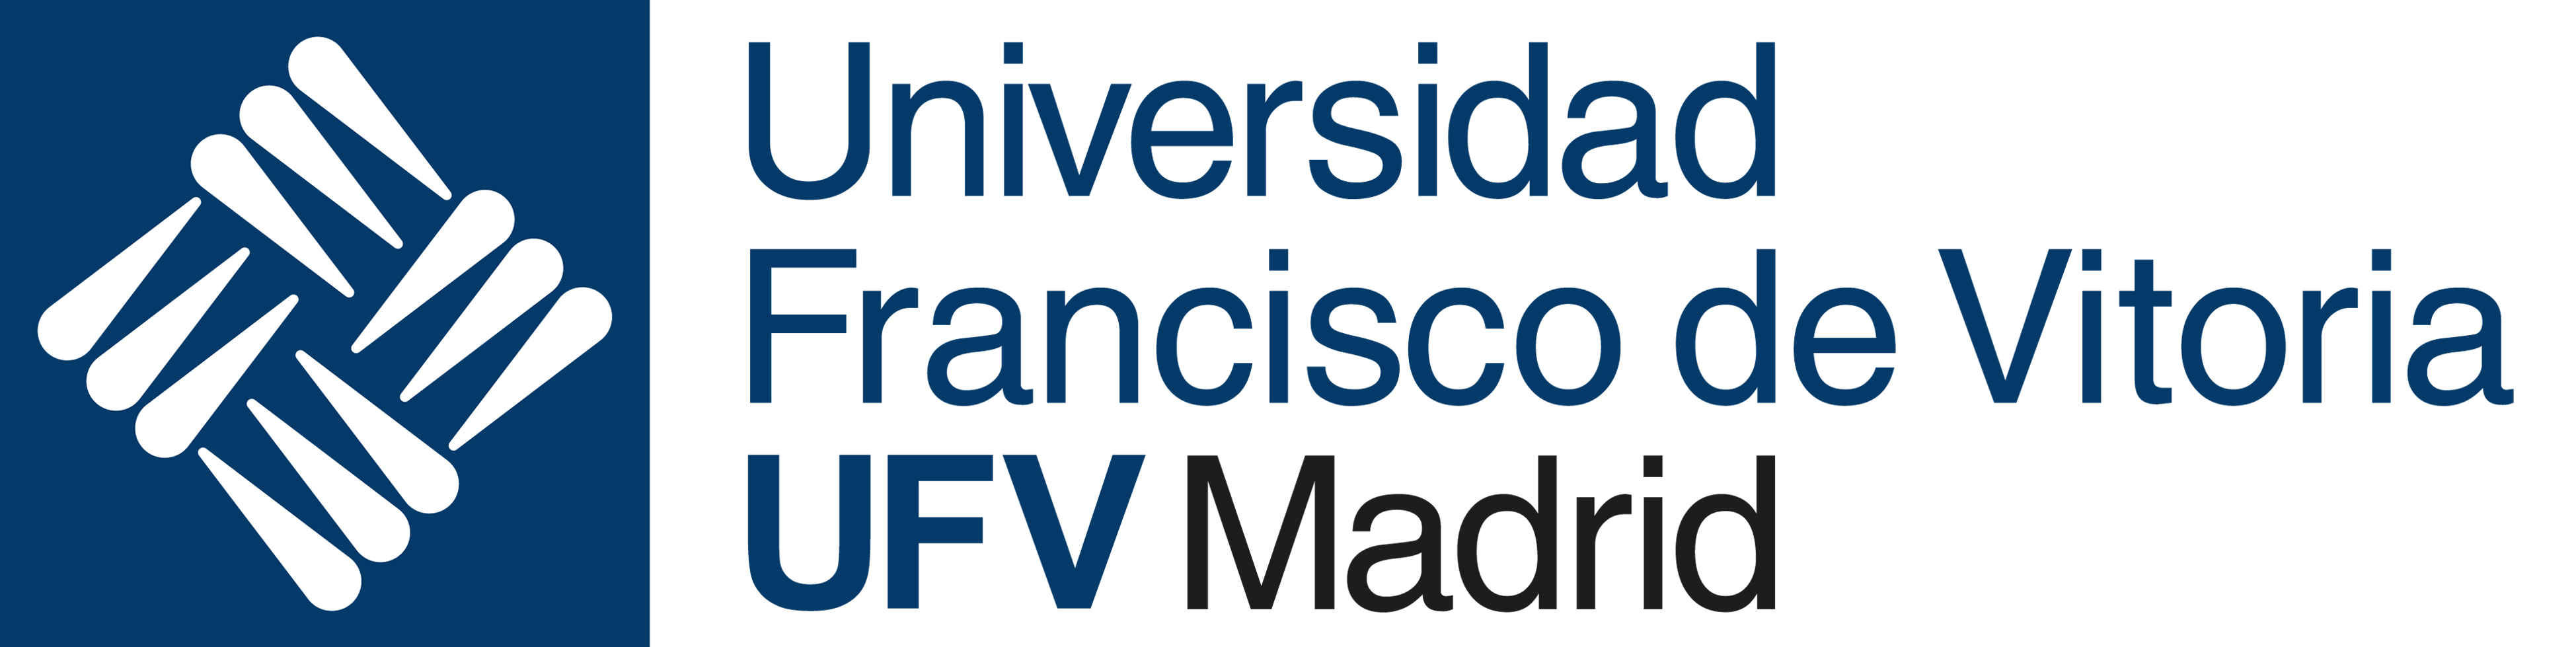 Universidad UFV